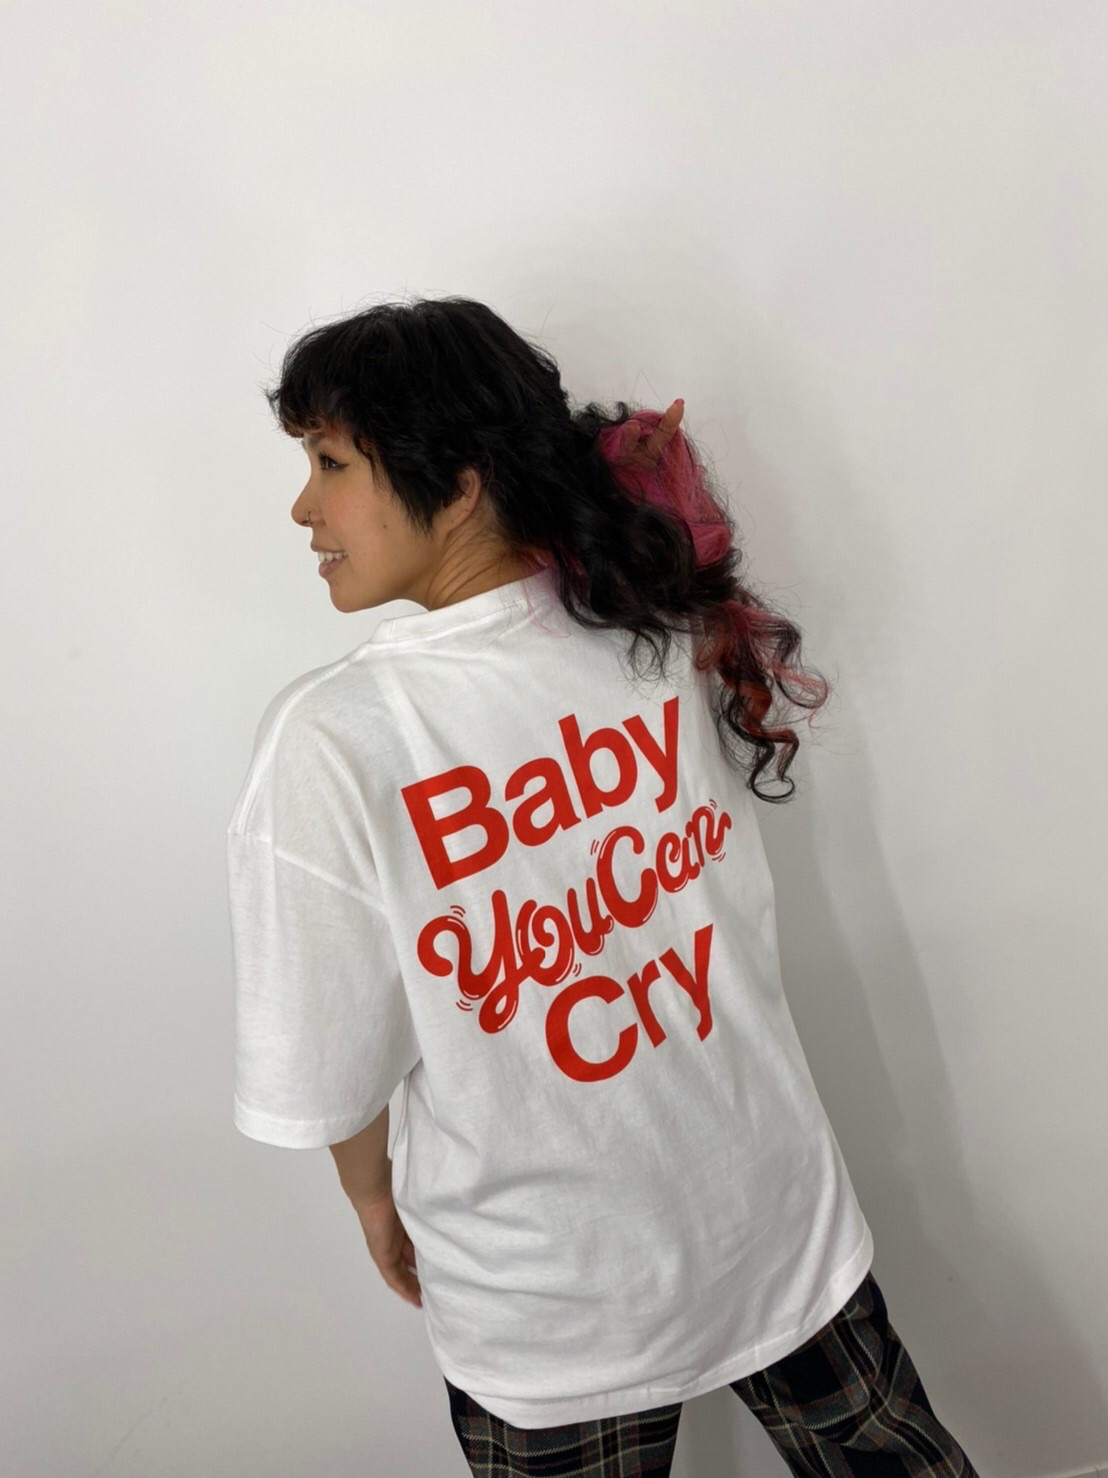 Baby you can cry Tee(ホワイト)